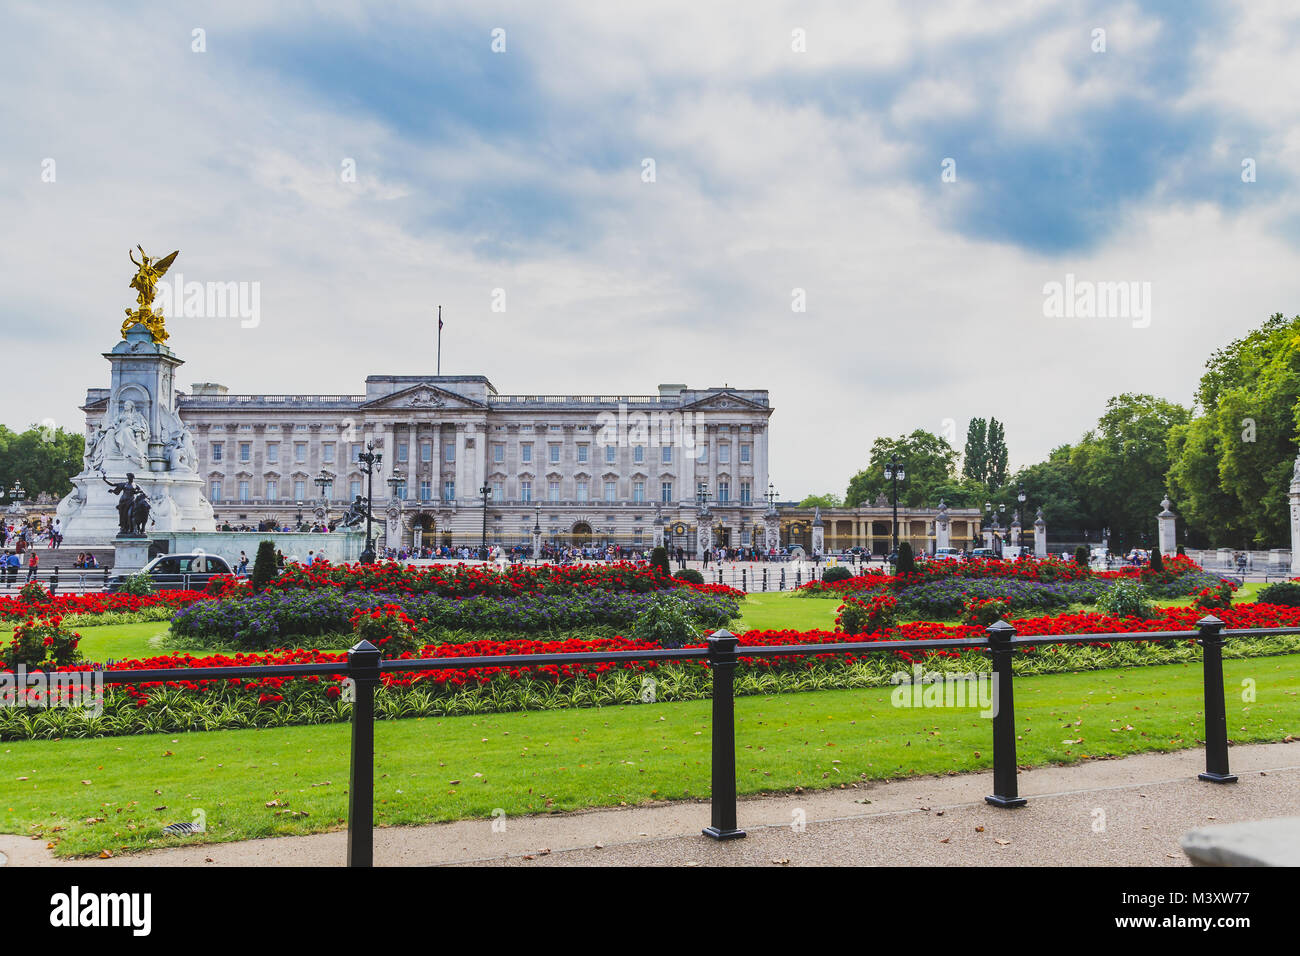 LONDON, UNITED KINGDOM - August, 12th, 2015: view of the exterior of Buckingham Palace - Stock Image